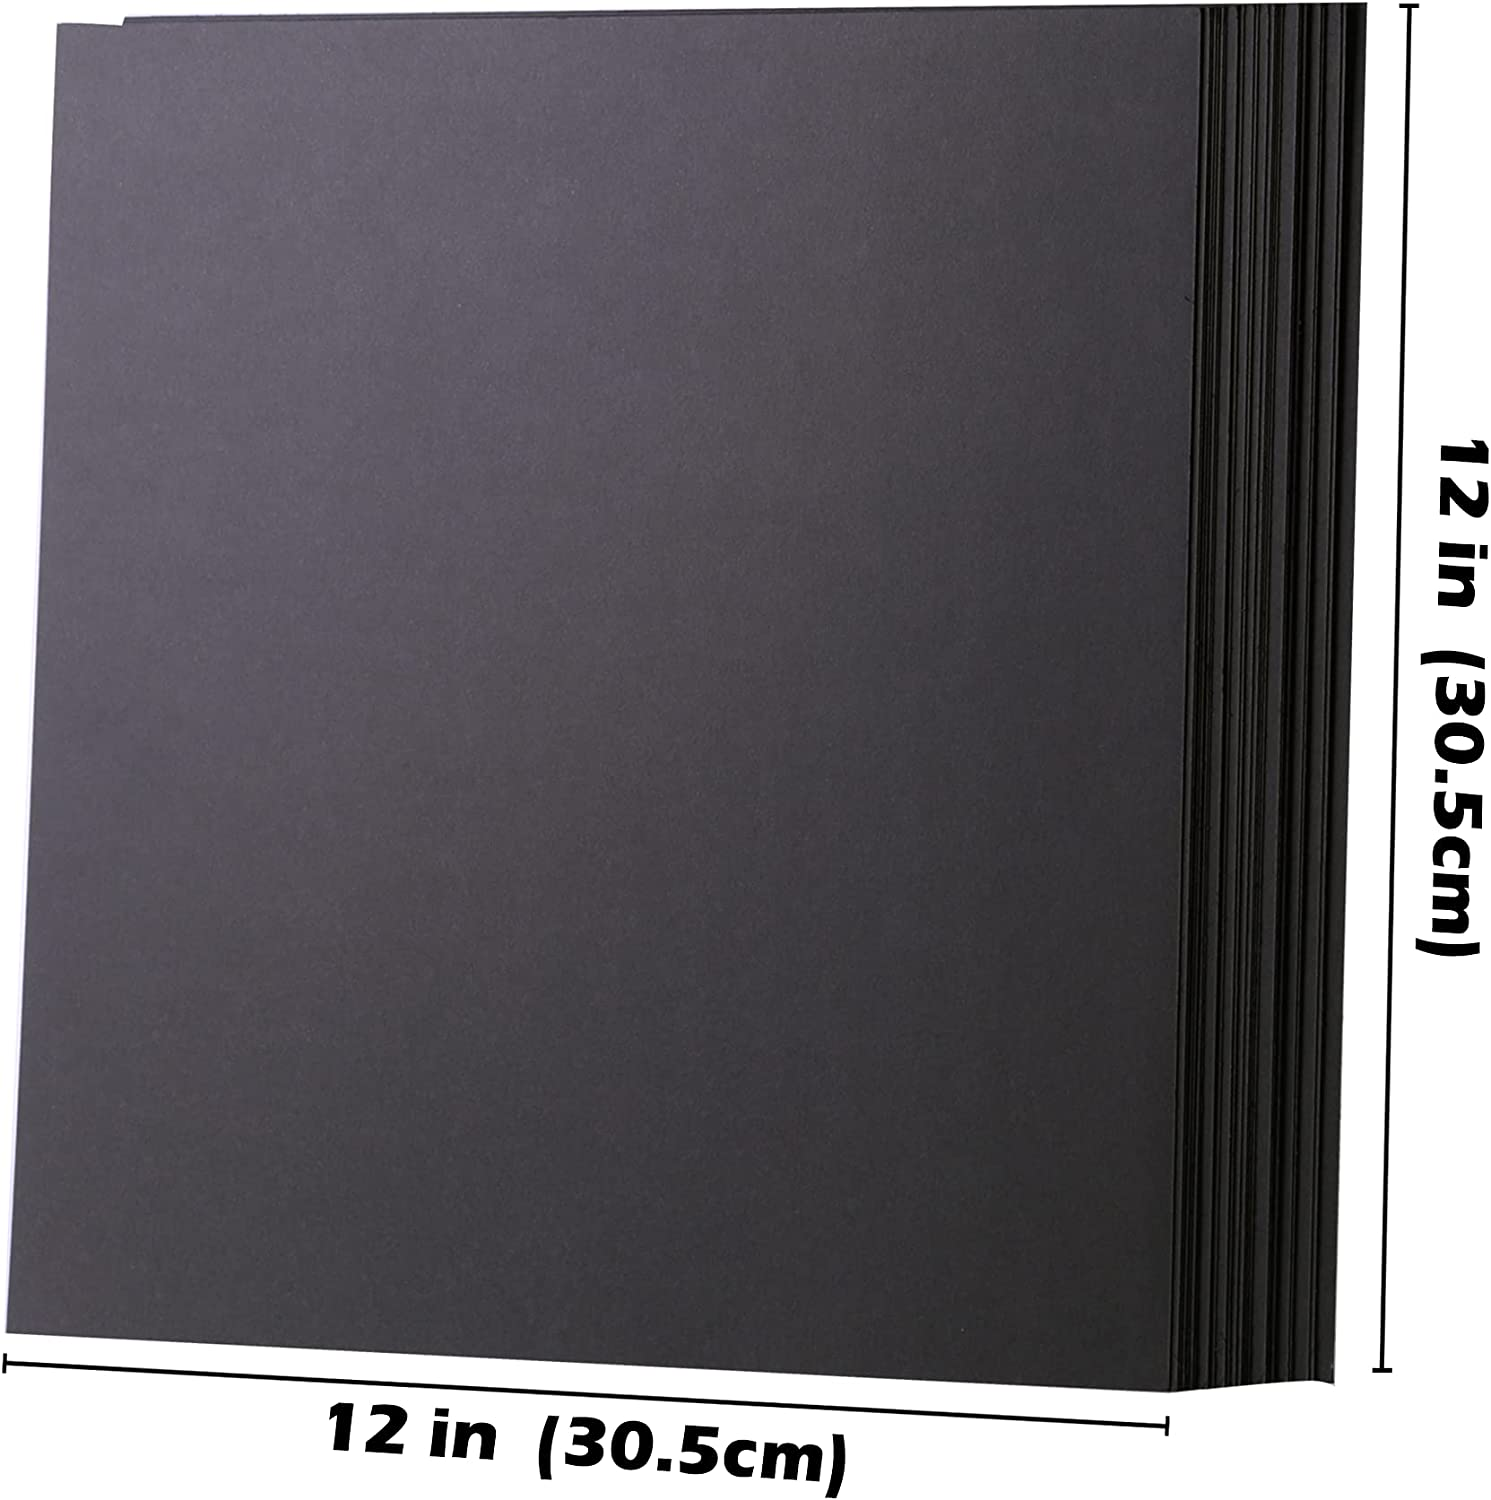 Black Cardstock - 12'' x 12'' 85lb Cover Card Stock Paper Perfect for Scrapbooking, Crafts, Business Cards 30 Sheets 230g UAP05BK : Office Products